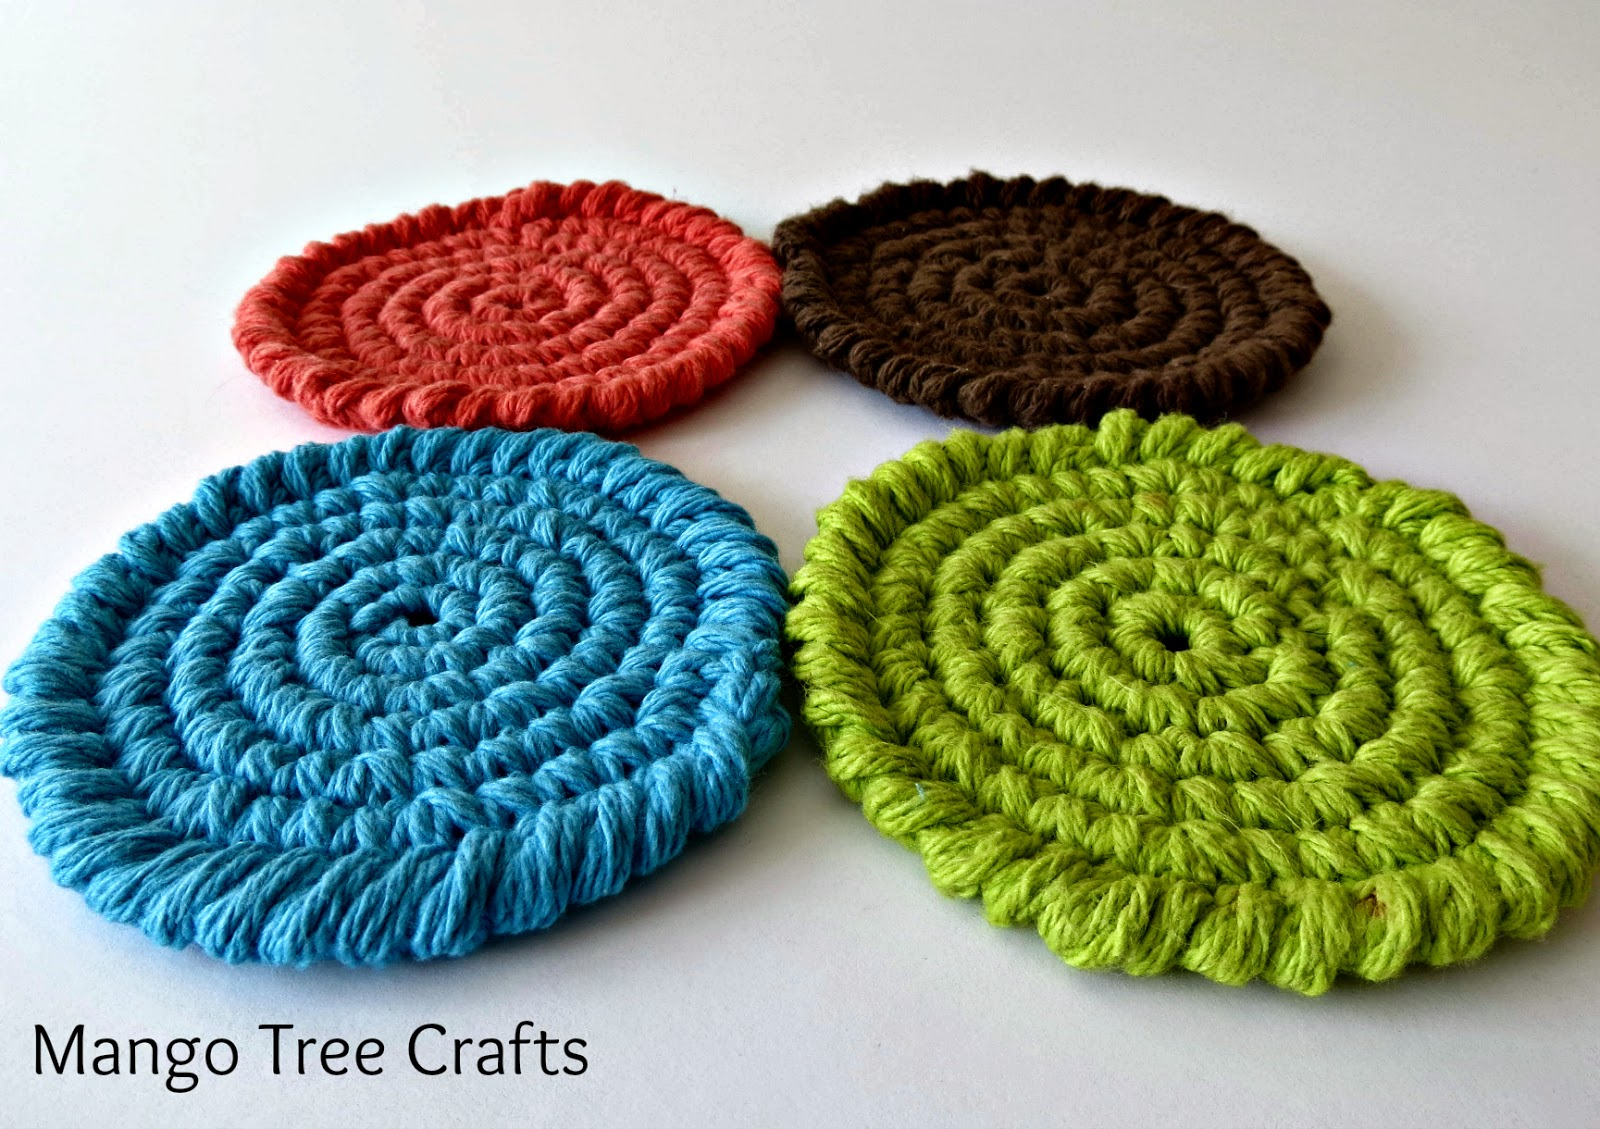 Free Crochet Patterns Of Coasters : Mango Tree Crafts: Free Crochet Coasters Pattern